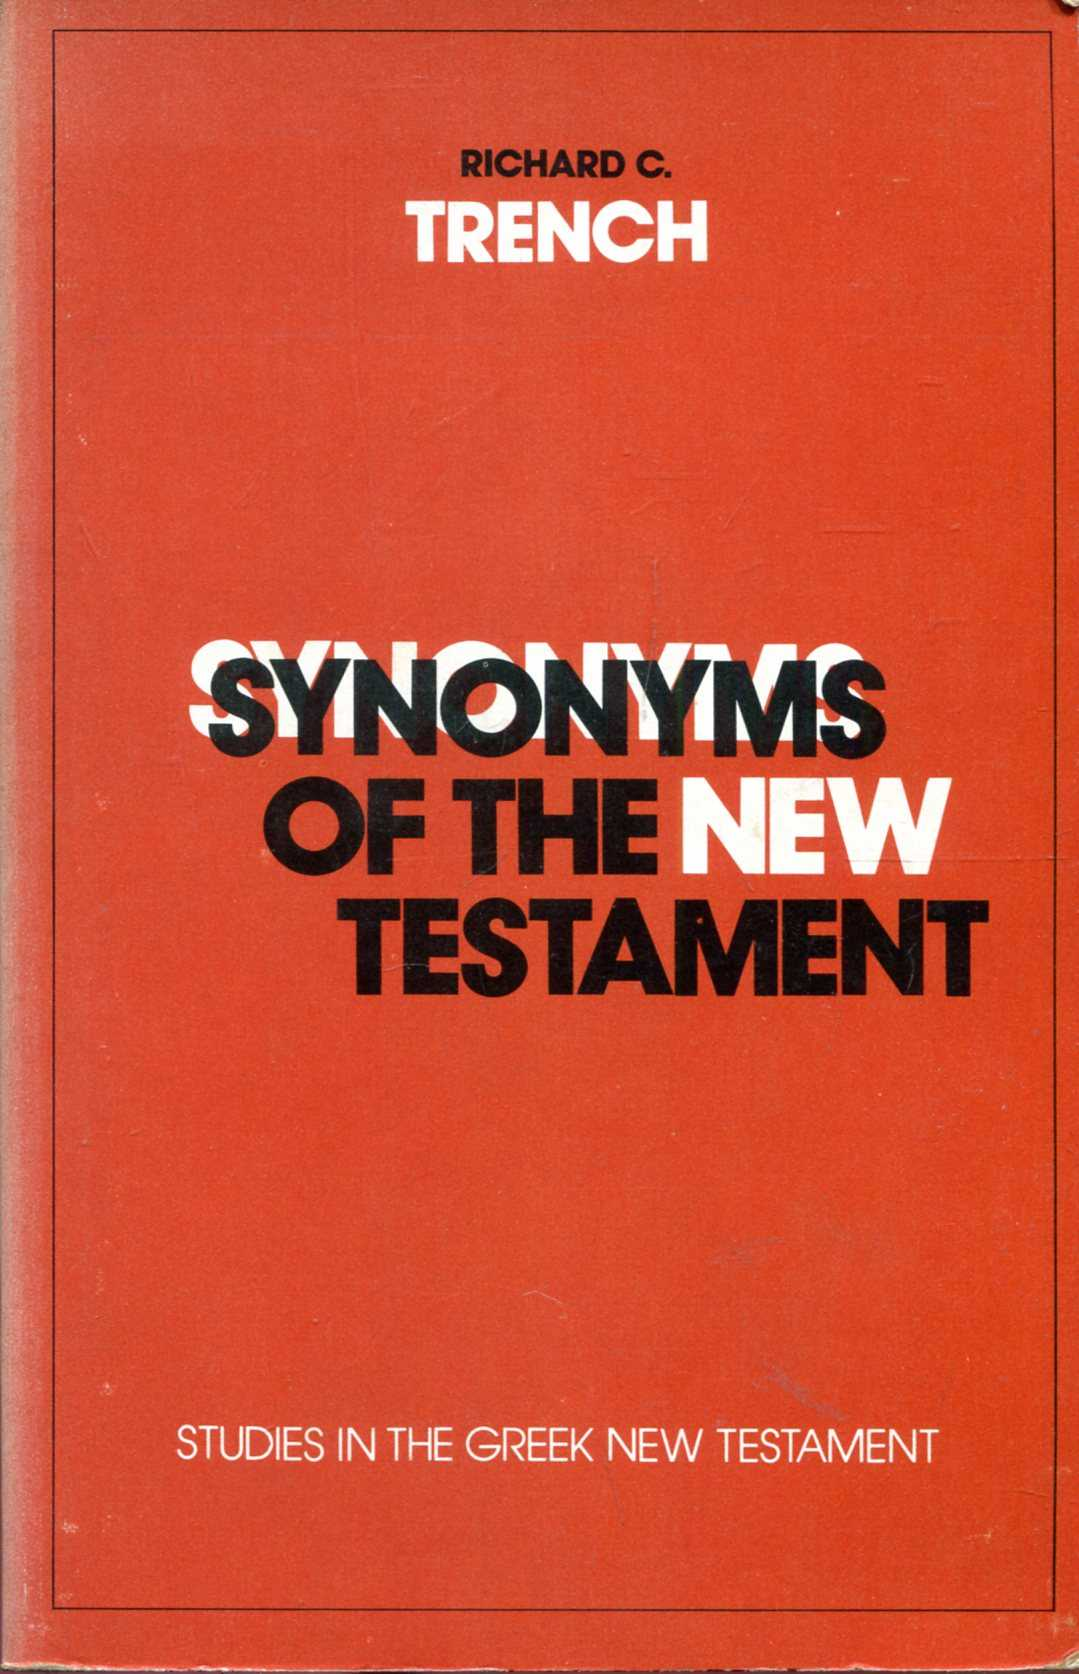 Image for Synonyms of the New Testament, studies in the Greek New Testament